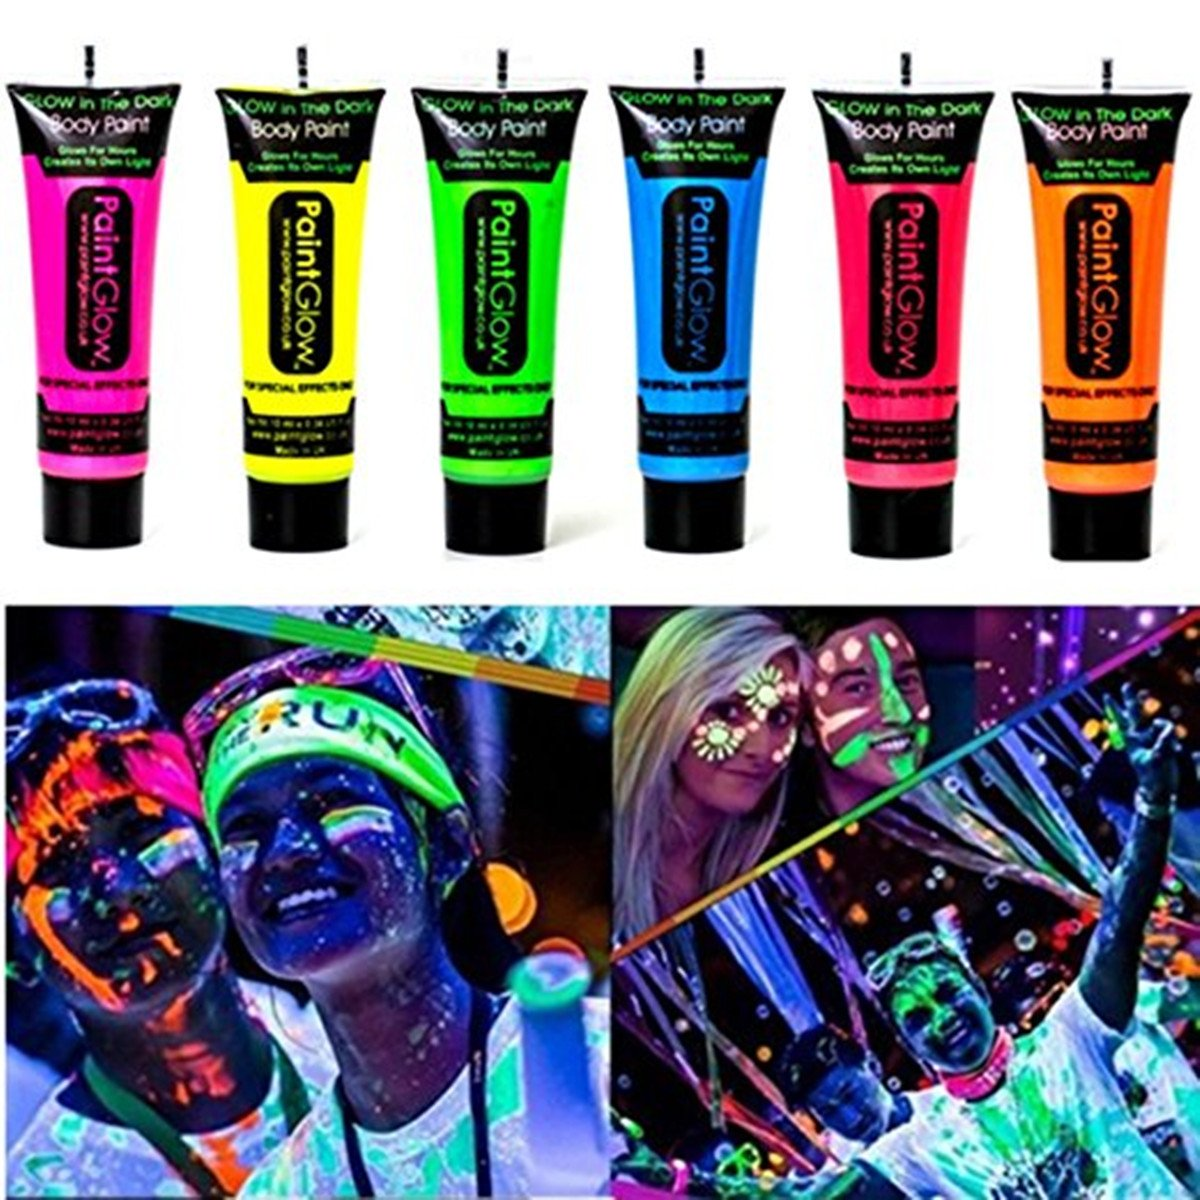 Amareu Glow in Dark Body Paint Body& Face Glow Backlight Neon Fluorescent 0.35oz Set of 6 Tubes